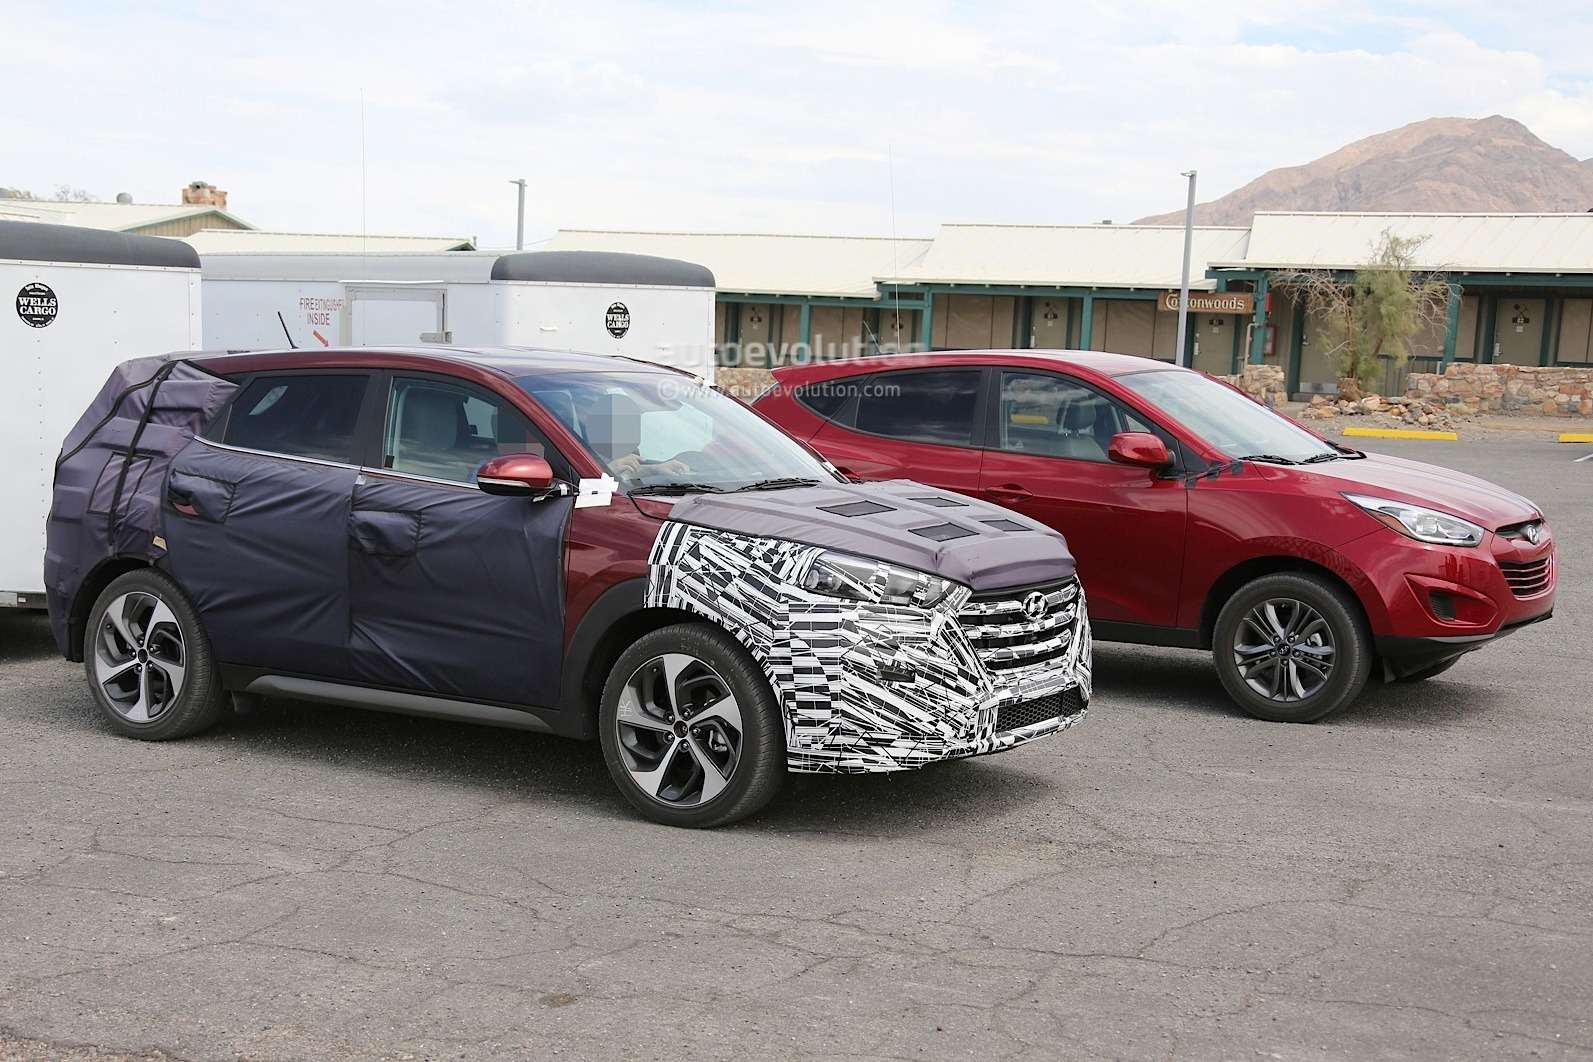 all-new-2016-hyundai-tucson-spied-with-less-camouflage-in-america-photo-gallery-1080p-11